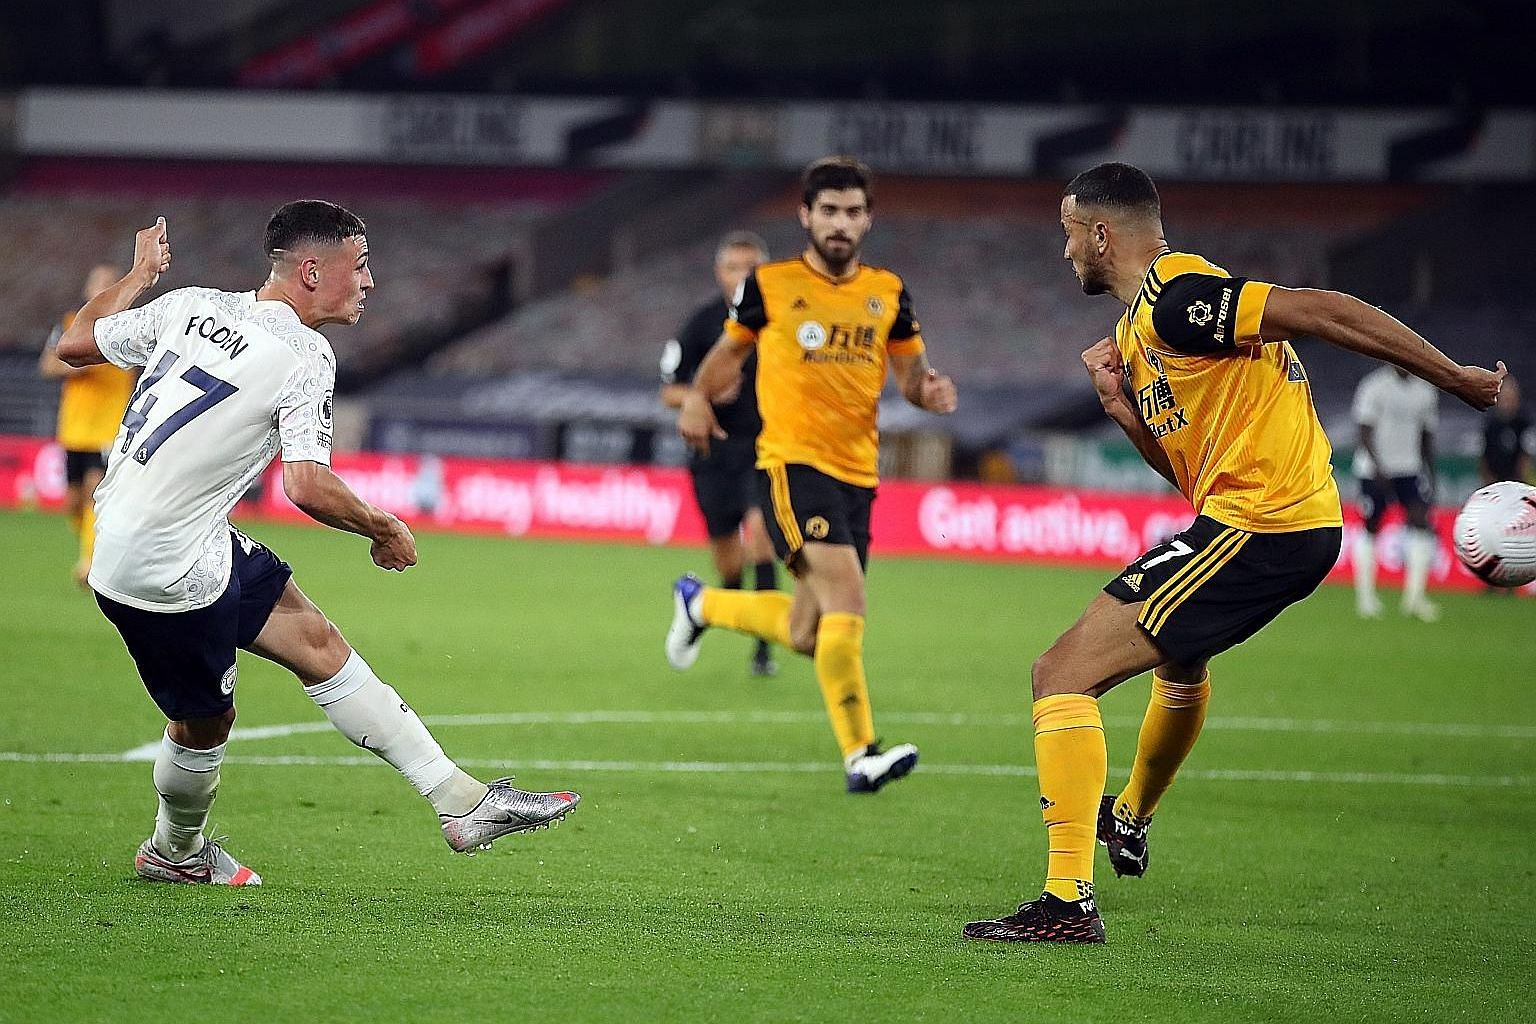 Phil Foden making the score 2-0 for Manchester City against Wolves at the Molineux on Monday. The 3-1 win was City's 10th consecutive Premier League opening-fixture victory. PHOTOS: EPA-EFE